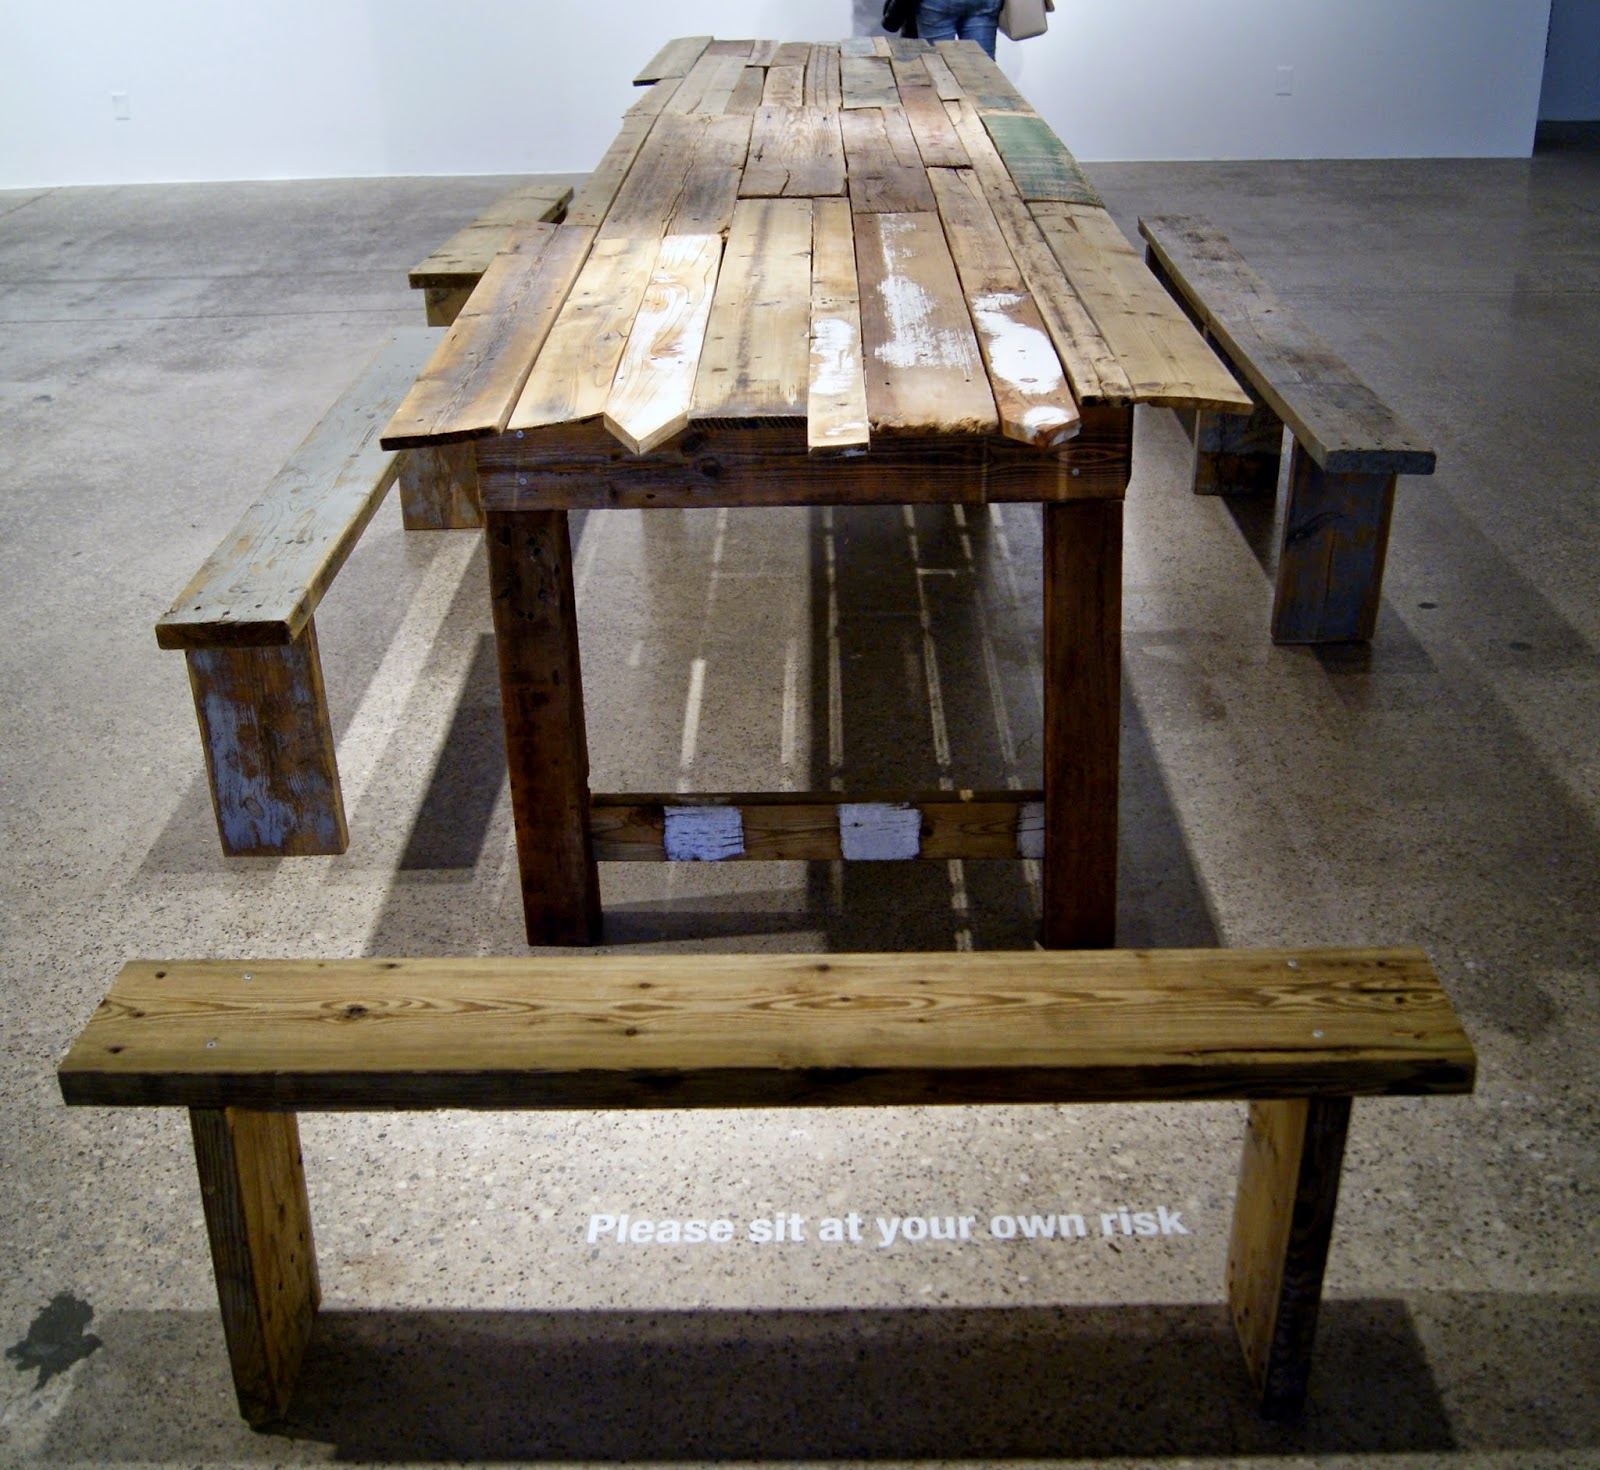 TBD Exhibit at MOCCA: Fences Will Turn Into Tables, Maggie Groat, Culture, Artmatters, Contemporary, Museum, Exhibition, Toronto, Ontario, Canada, The Purple Scarf, Melanie.Ps